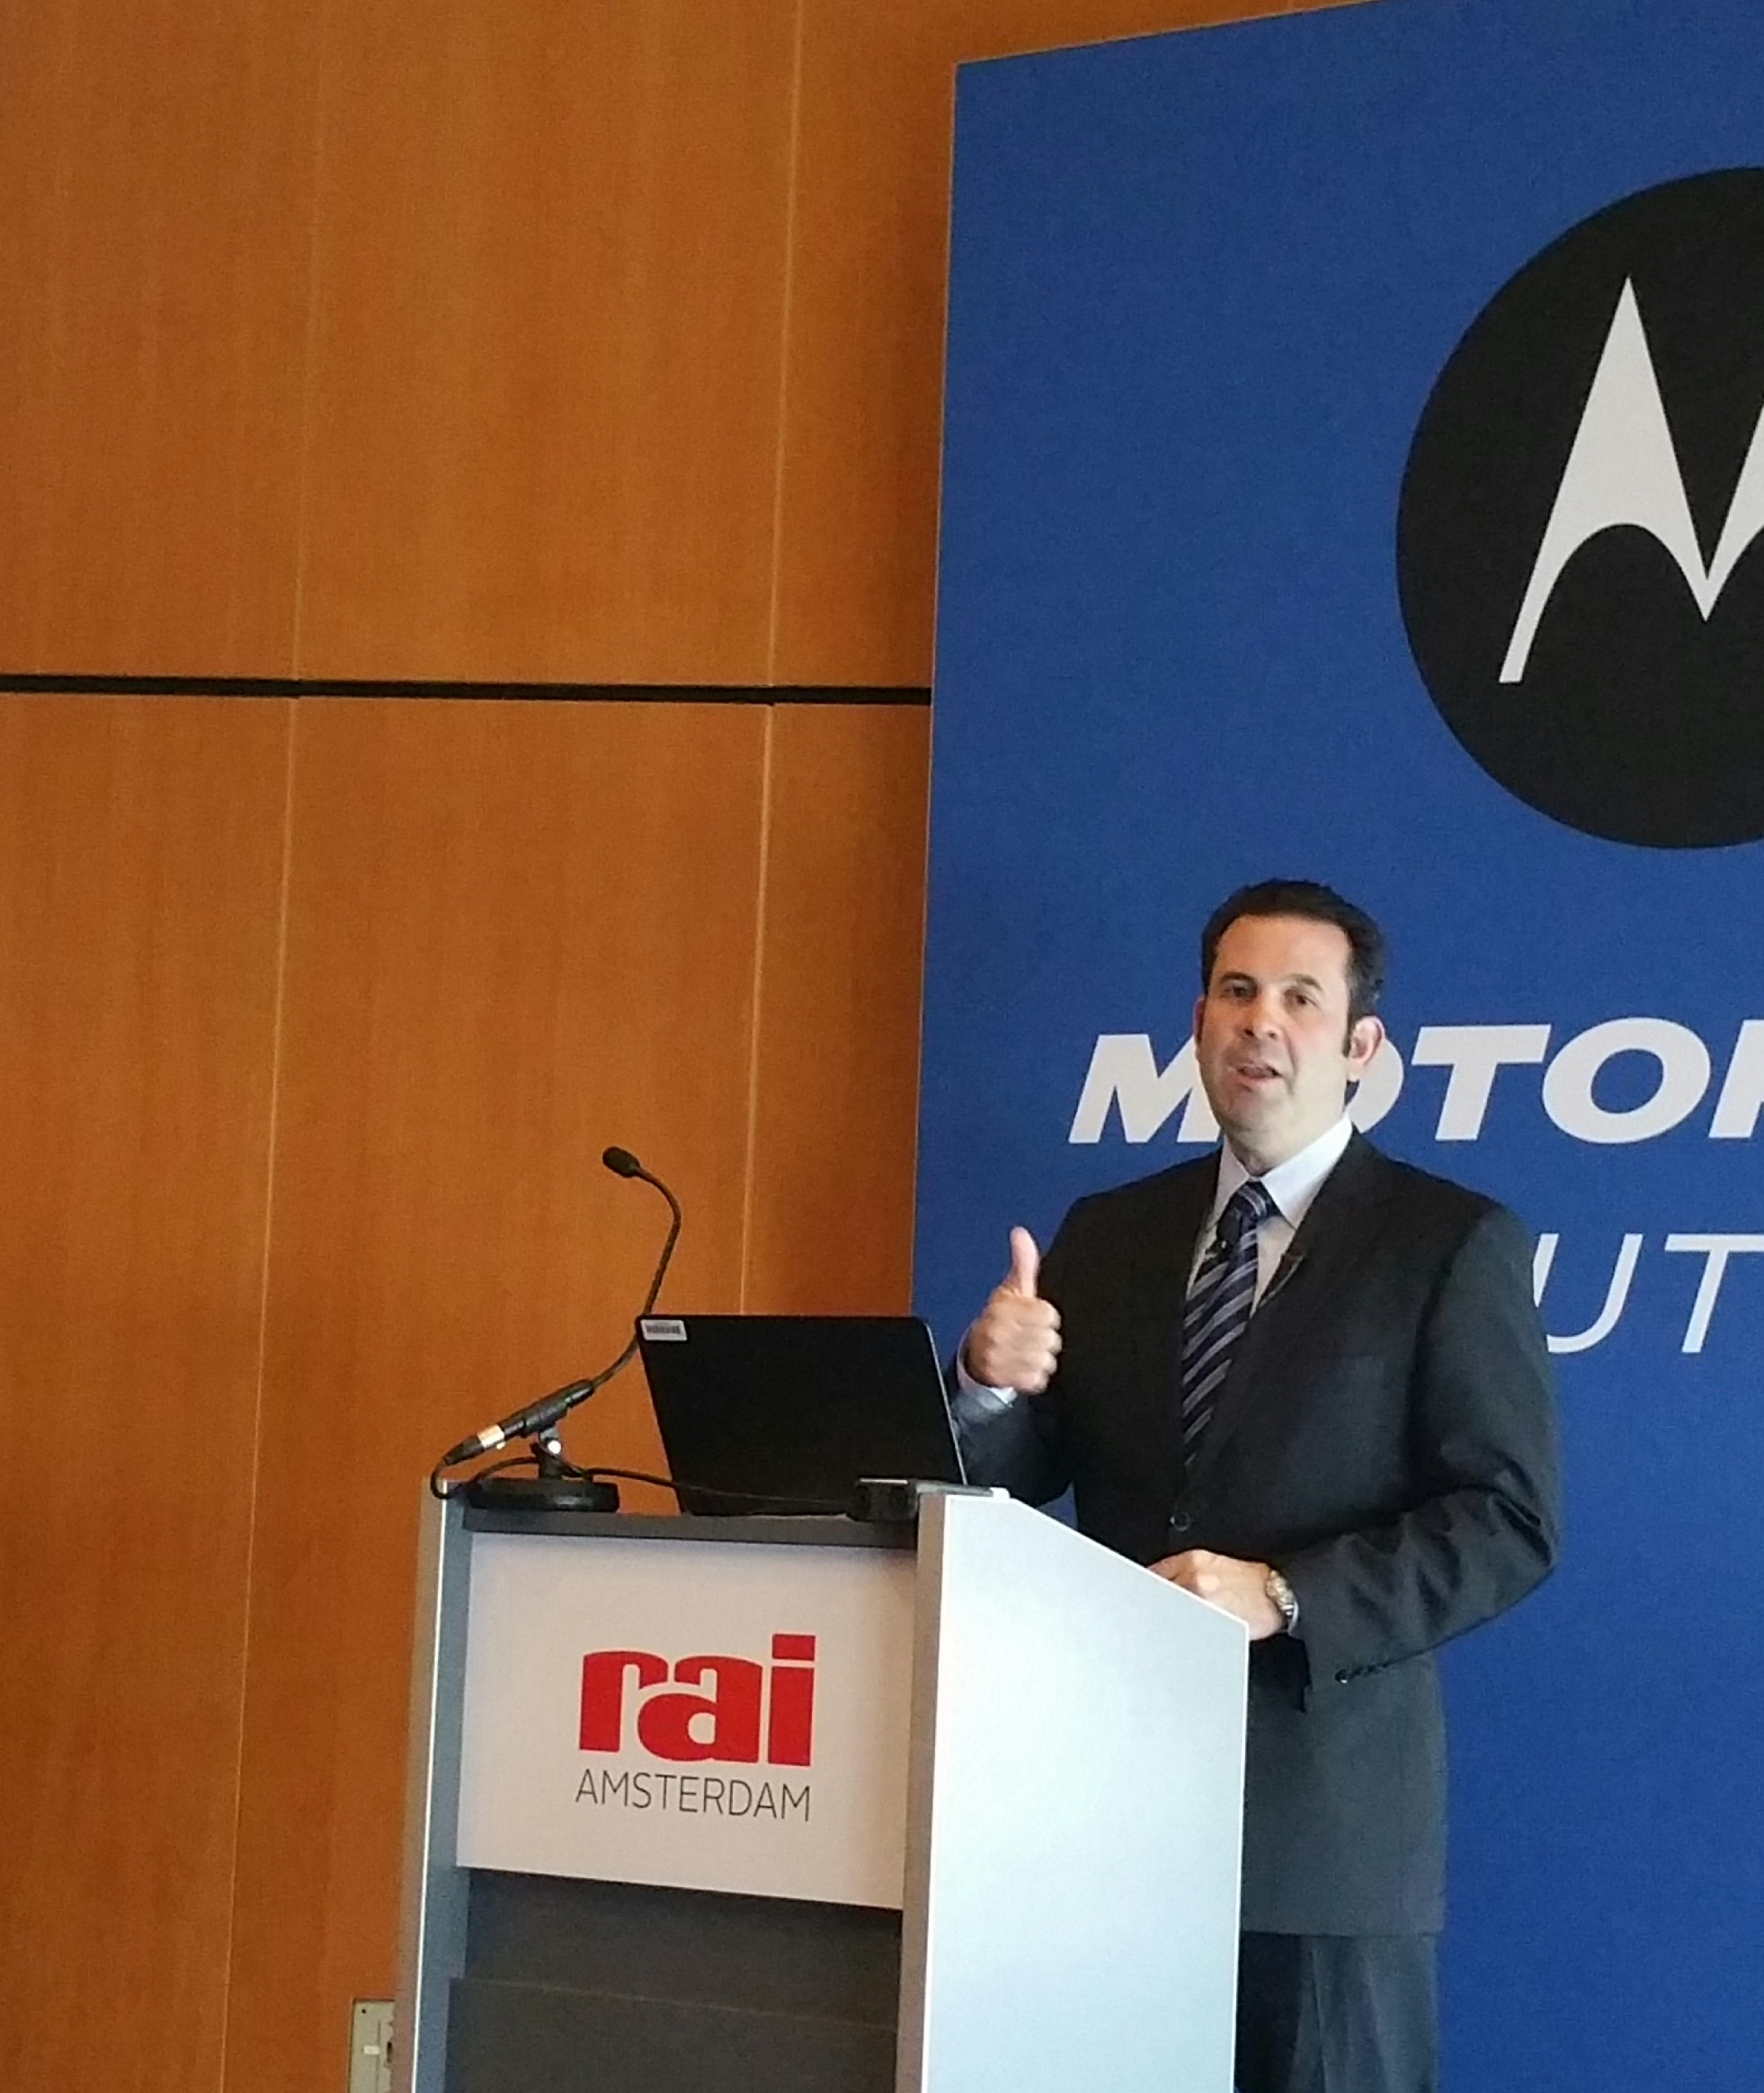 Eduardo Conrado, executive vp e cio di Motorola Solutions